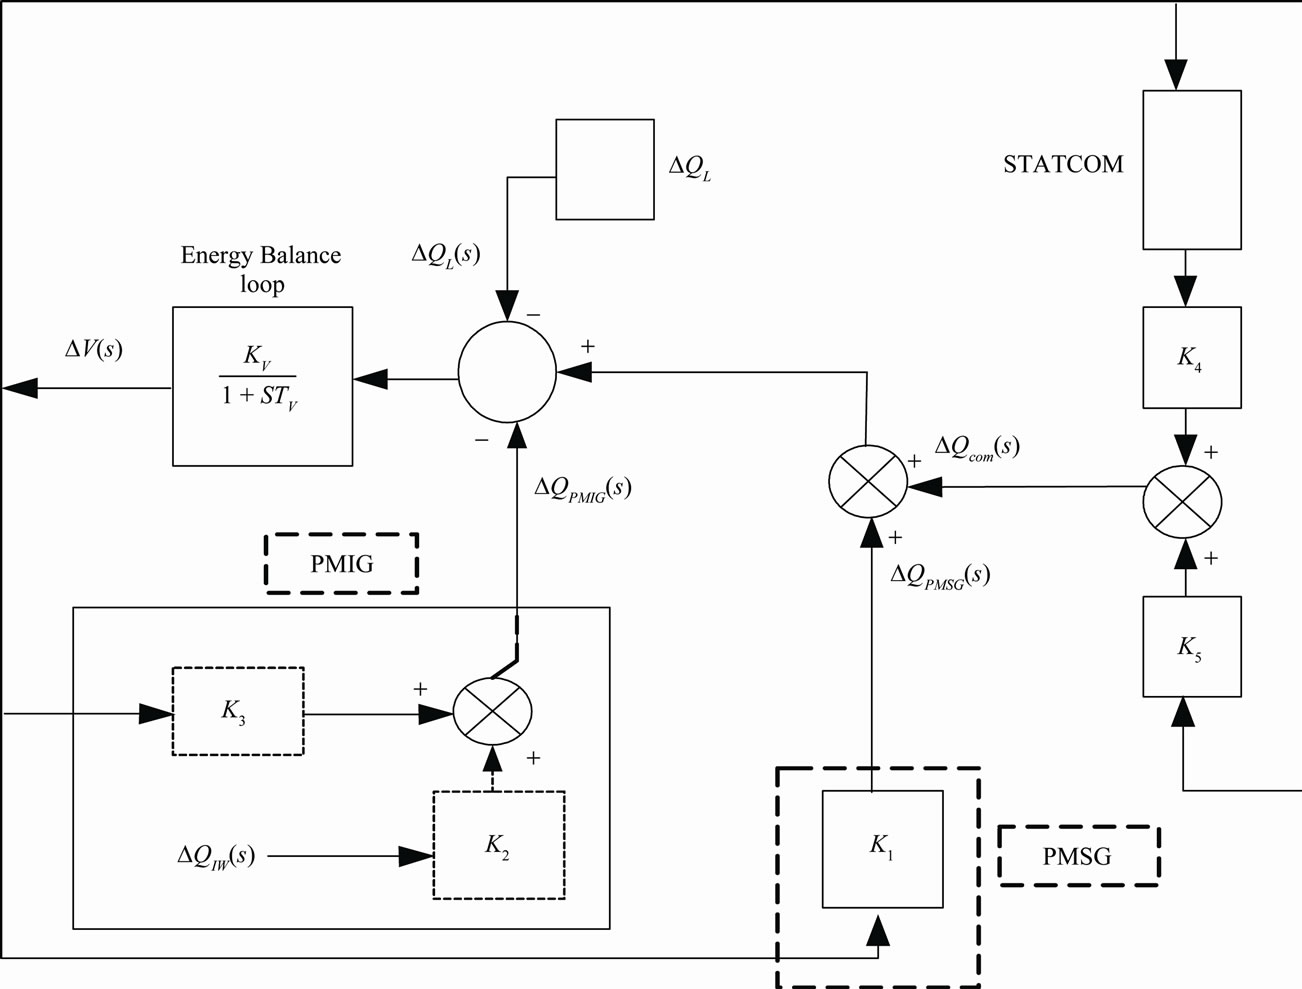 Performance Of A Wind Diesel Hybrid Power System With Statcom As Block Diagram Function Generator Reactive Compensator